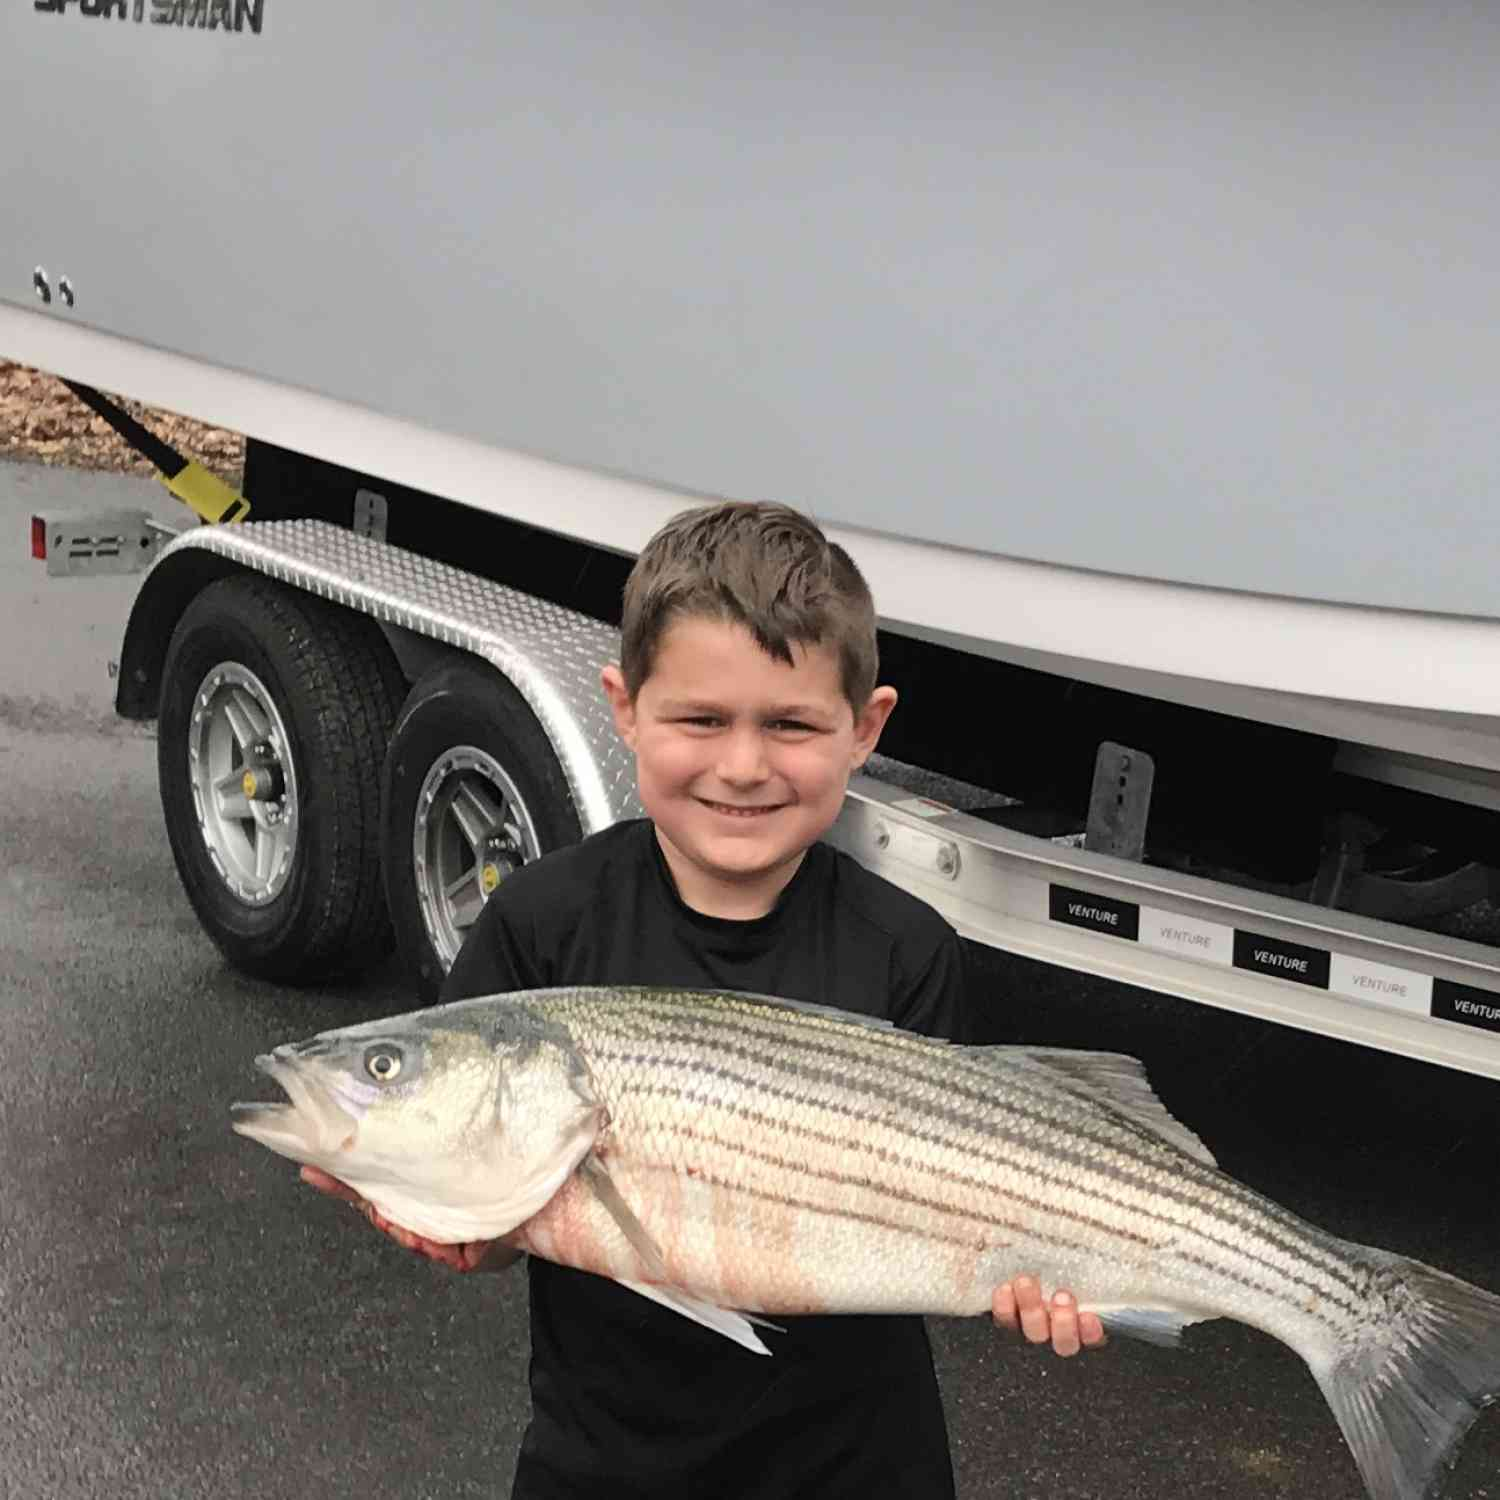 Title: First striper on the new boat - On board their Sportsman Open 232 Center Console - Location: Raritan Bay New Jersey. Participating in the Photo Contest #SportsmanApril2019